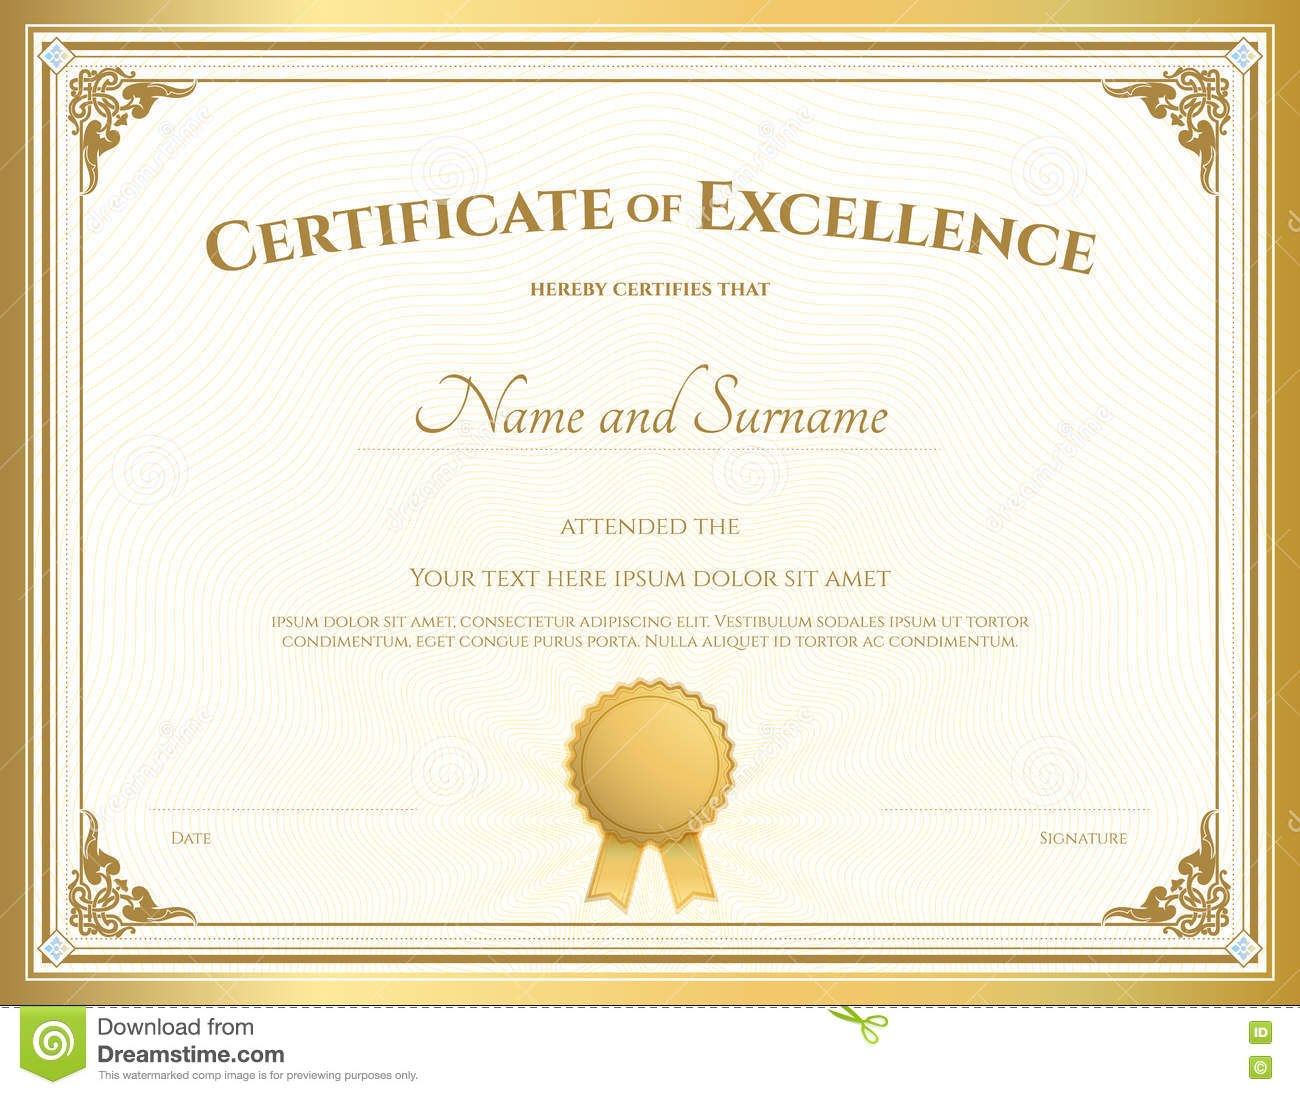 Certificate Of Excellence Template With Gold Border Stock Vector Pertaining To Free Certificate Of Excellence Template